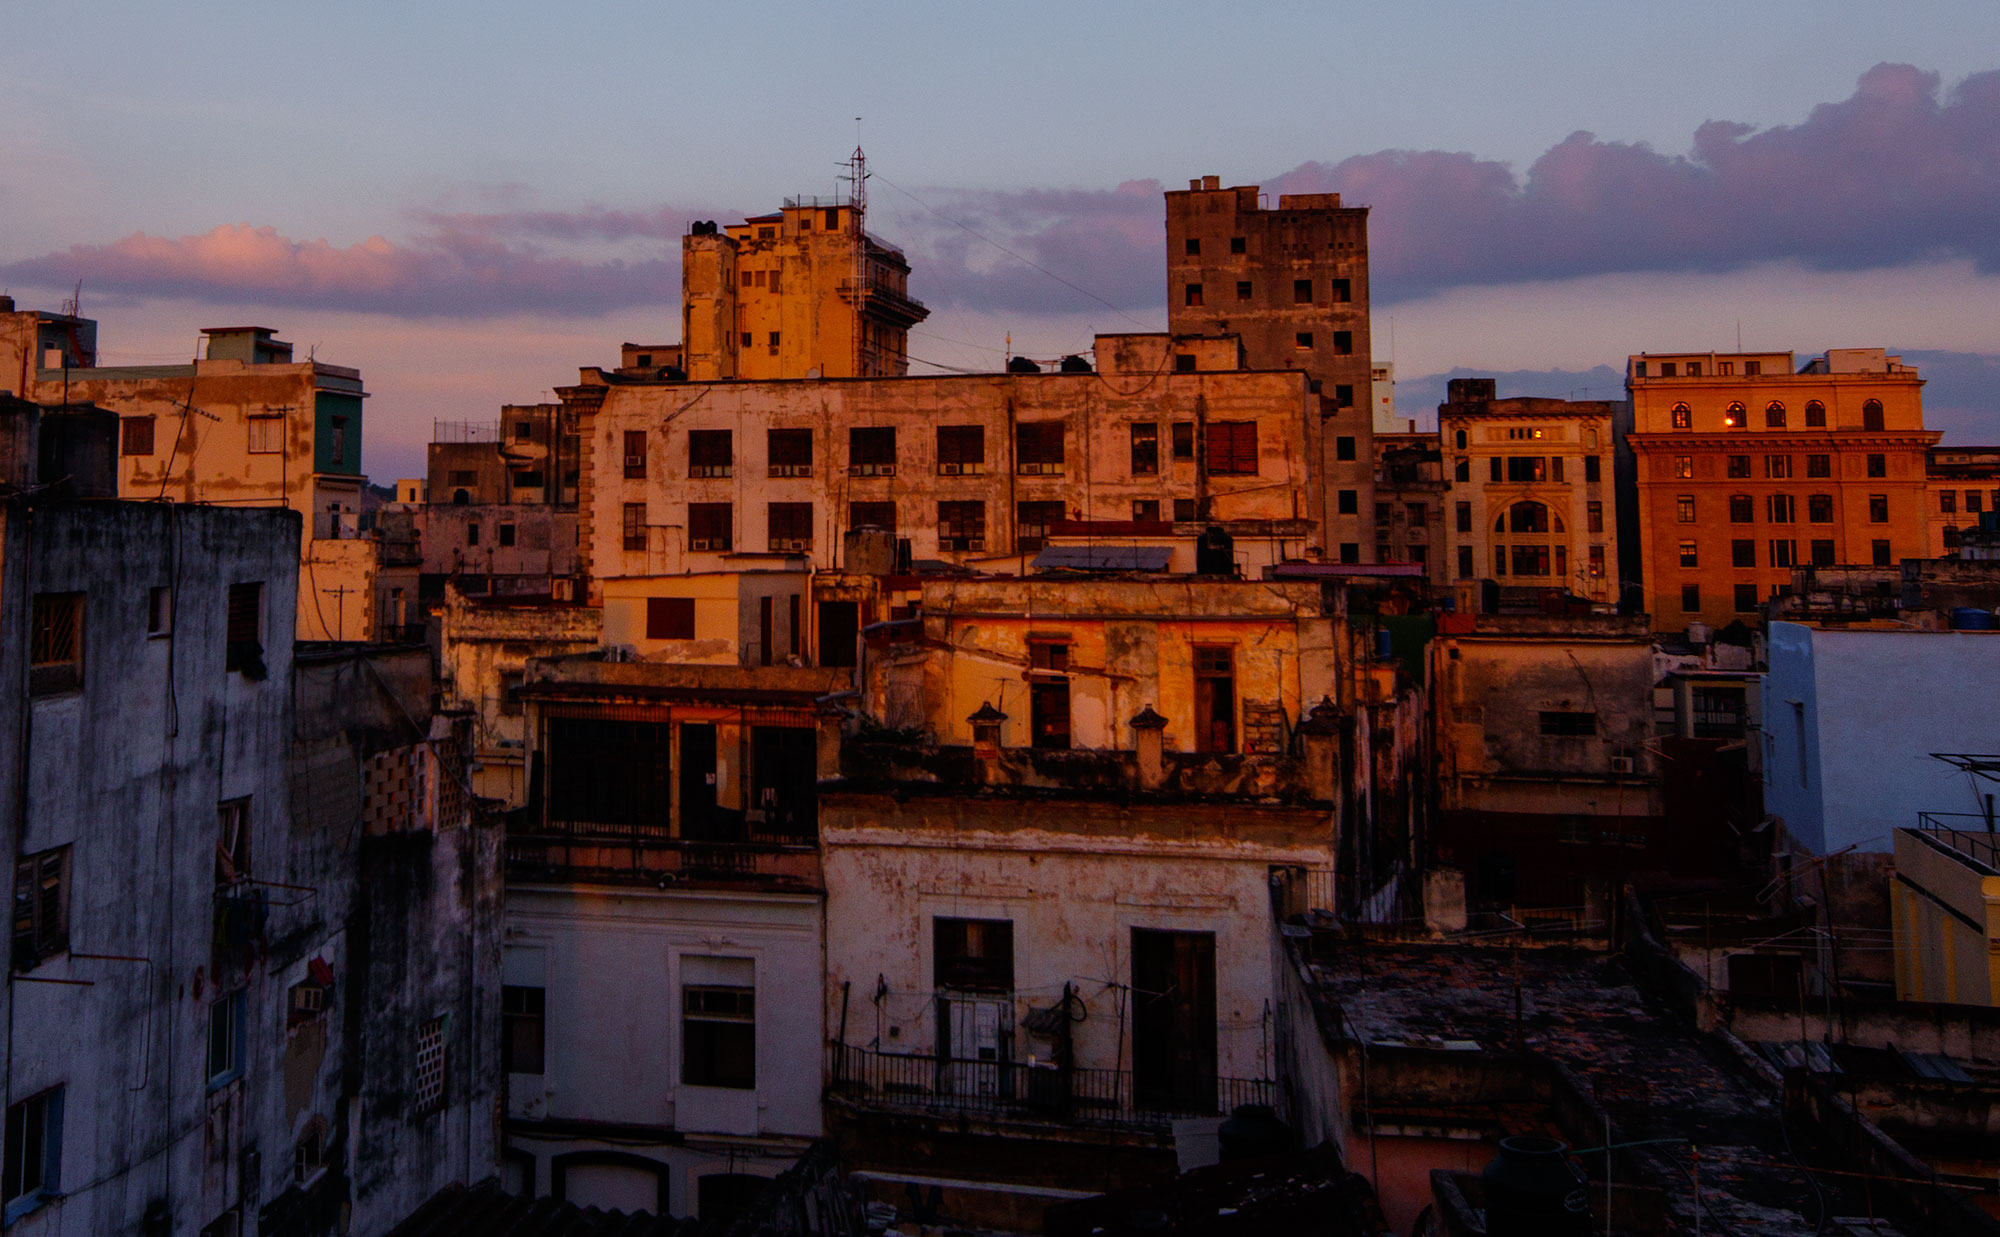 Rooftop view of Habana Vieja